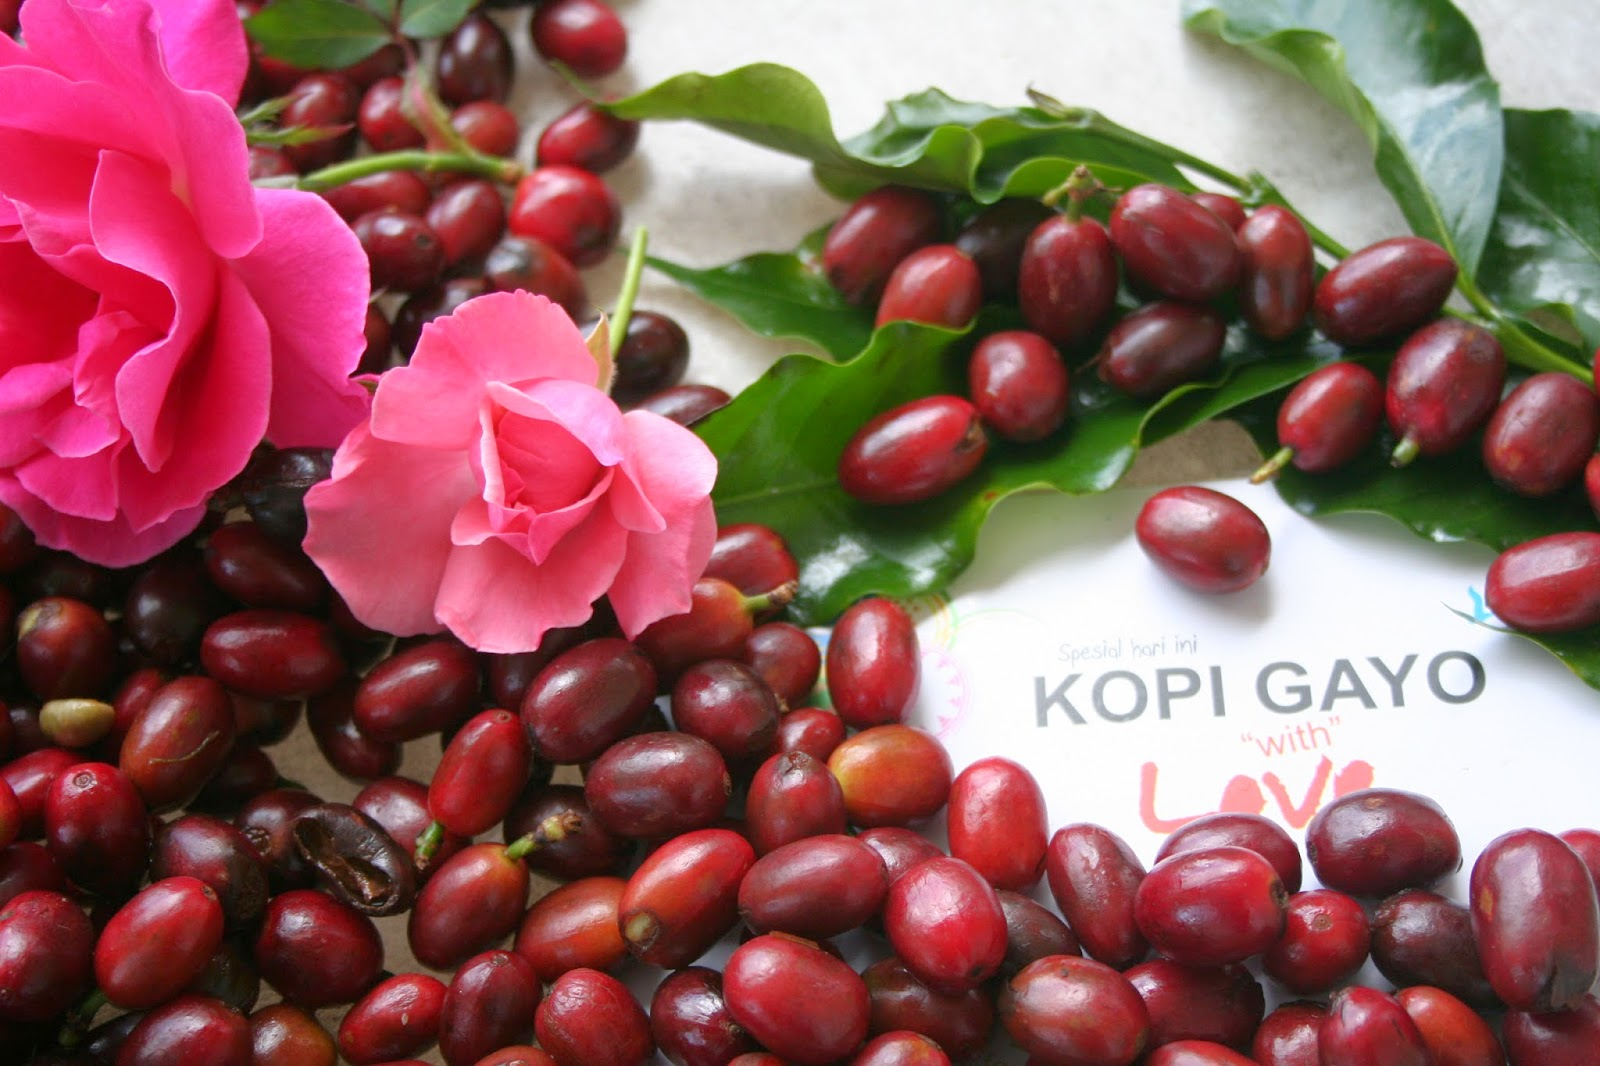 Coffee Lovers October 2014 Kopi Robusta Premium Gayo Land Arabica Is Rather Large And Dark Green Oval Leaves Trees Reaching Seven Meters High But In Plantations Tree Height Kept To A Range Of